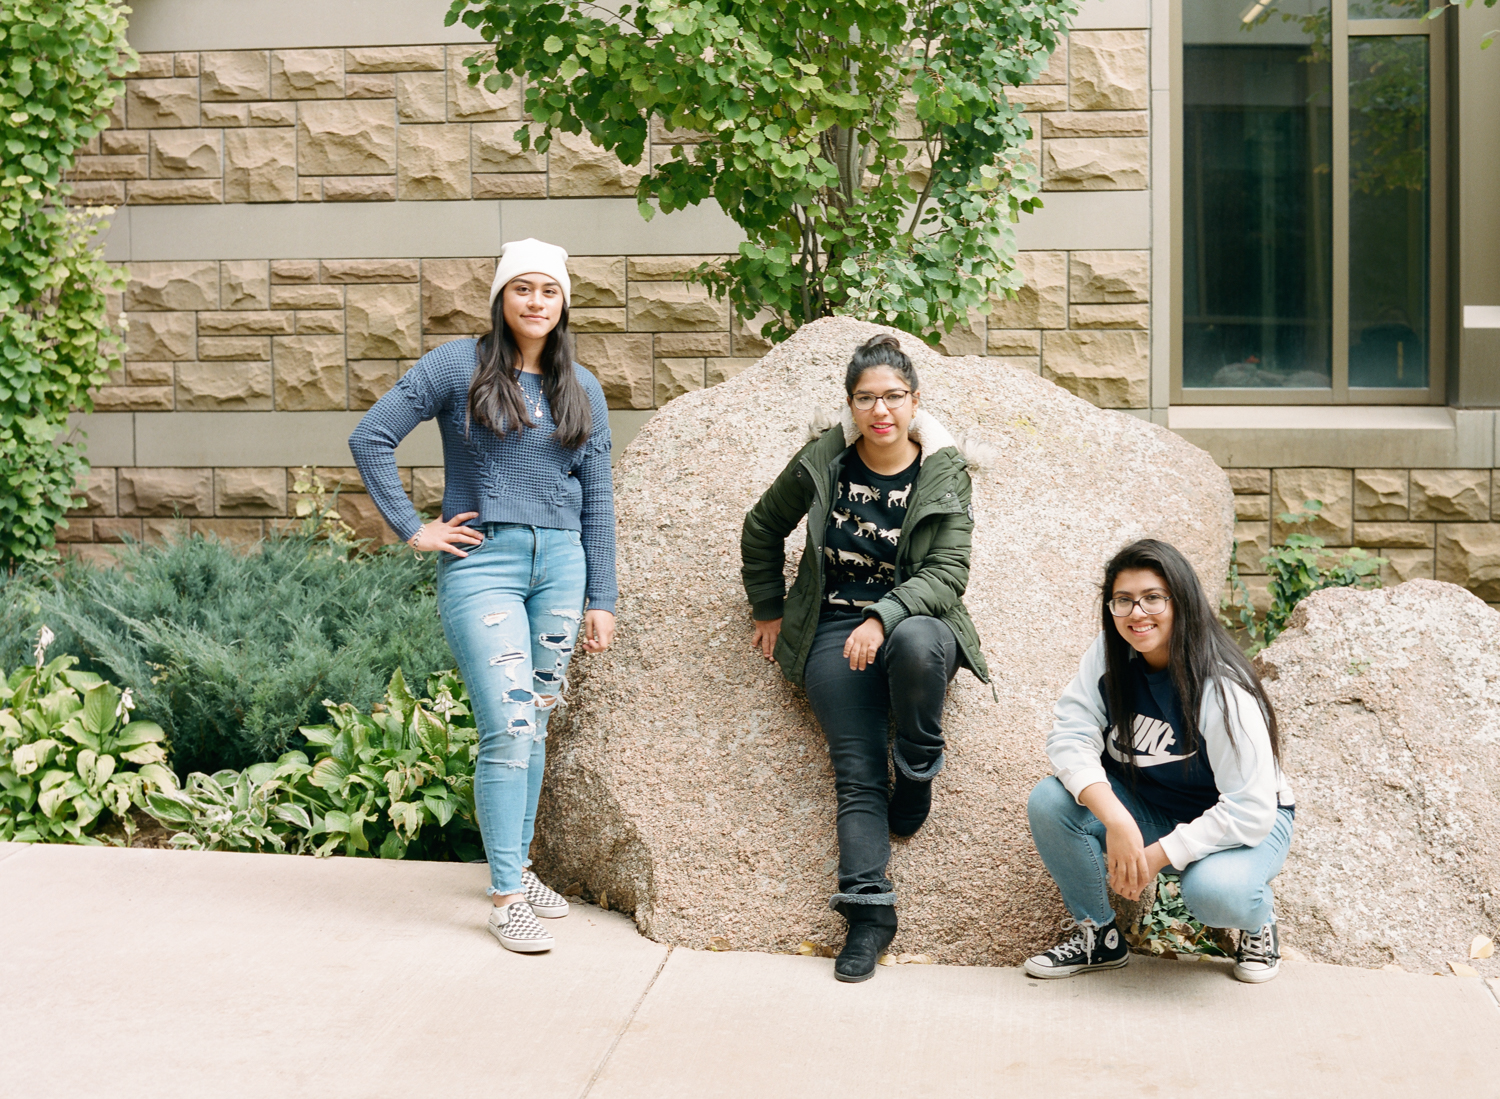 ylc_women_in_wyoming_laramie_university_of_wyoming_marycruz_carmen_raquel.jpg